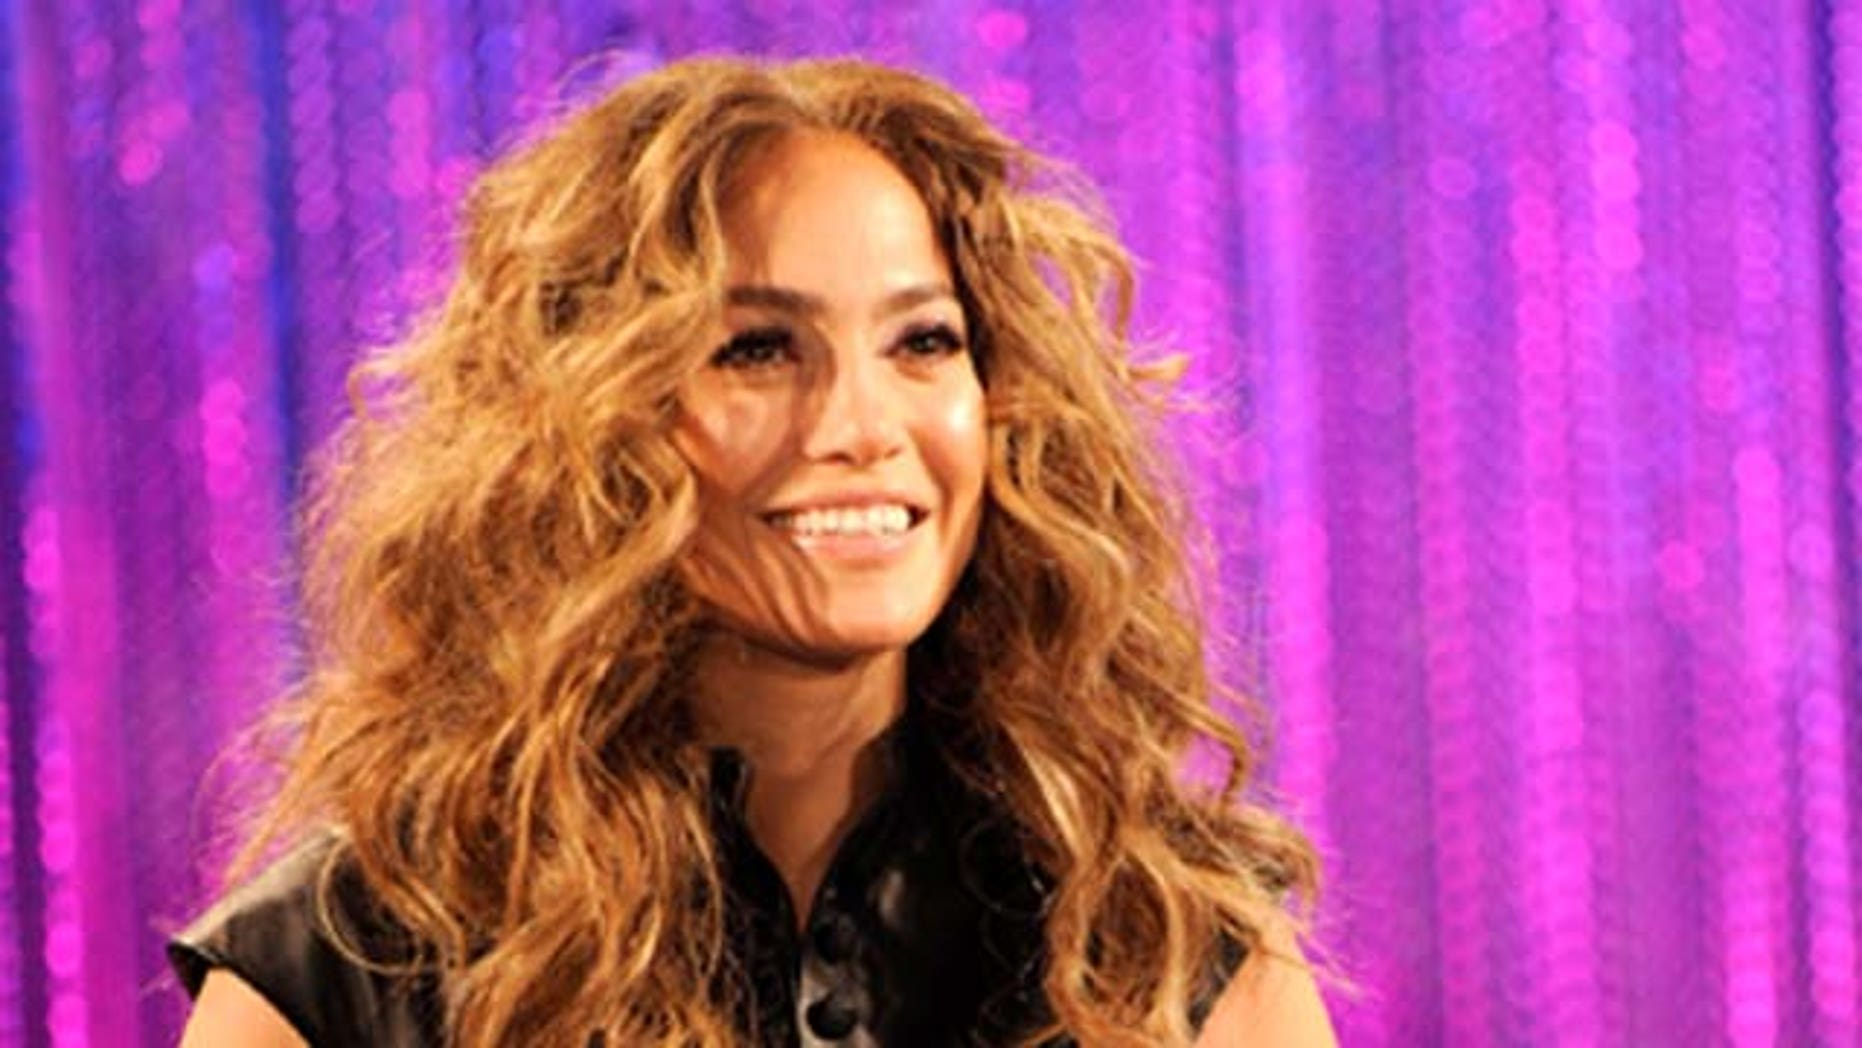 MAY 3, 2011: Jennifer Lopez signs CD covers for fans to celebrate her new album 'LOVE?' held at the Hard Rock Cafe Hollywood in Hollywood, Calif.